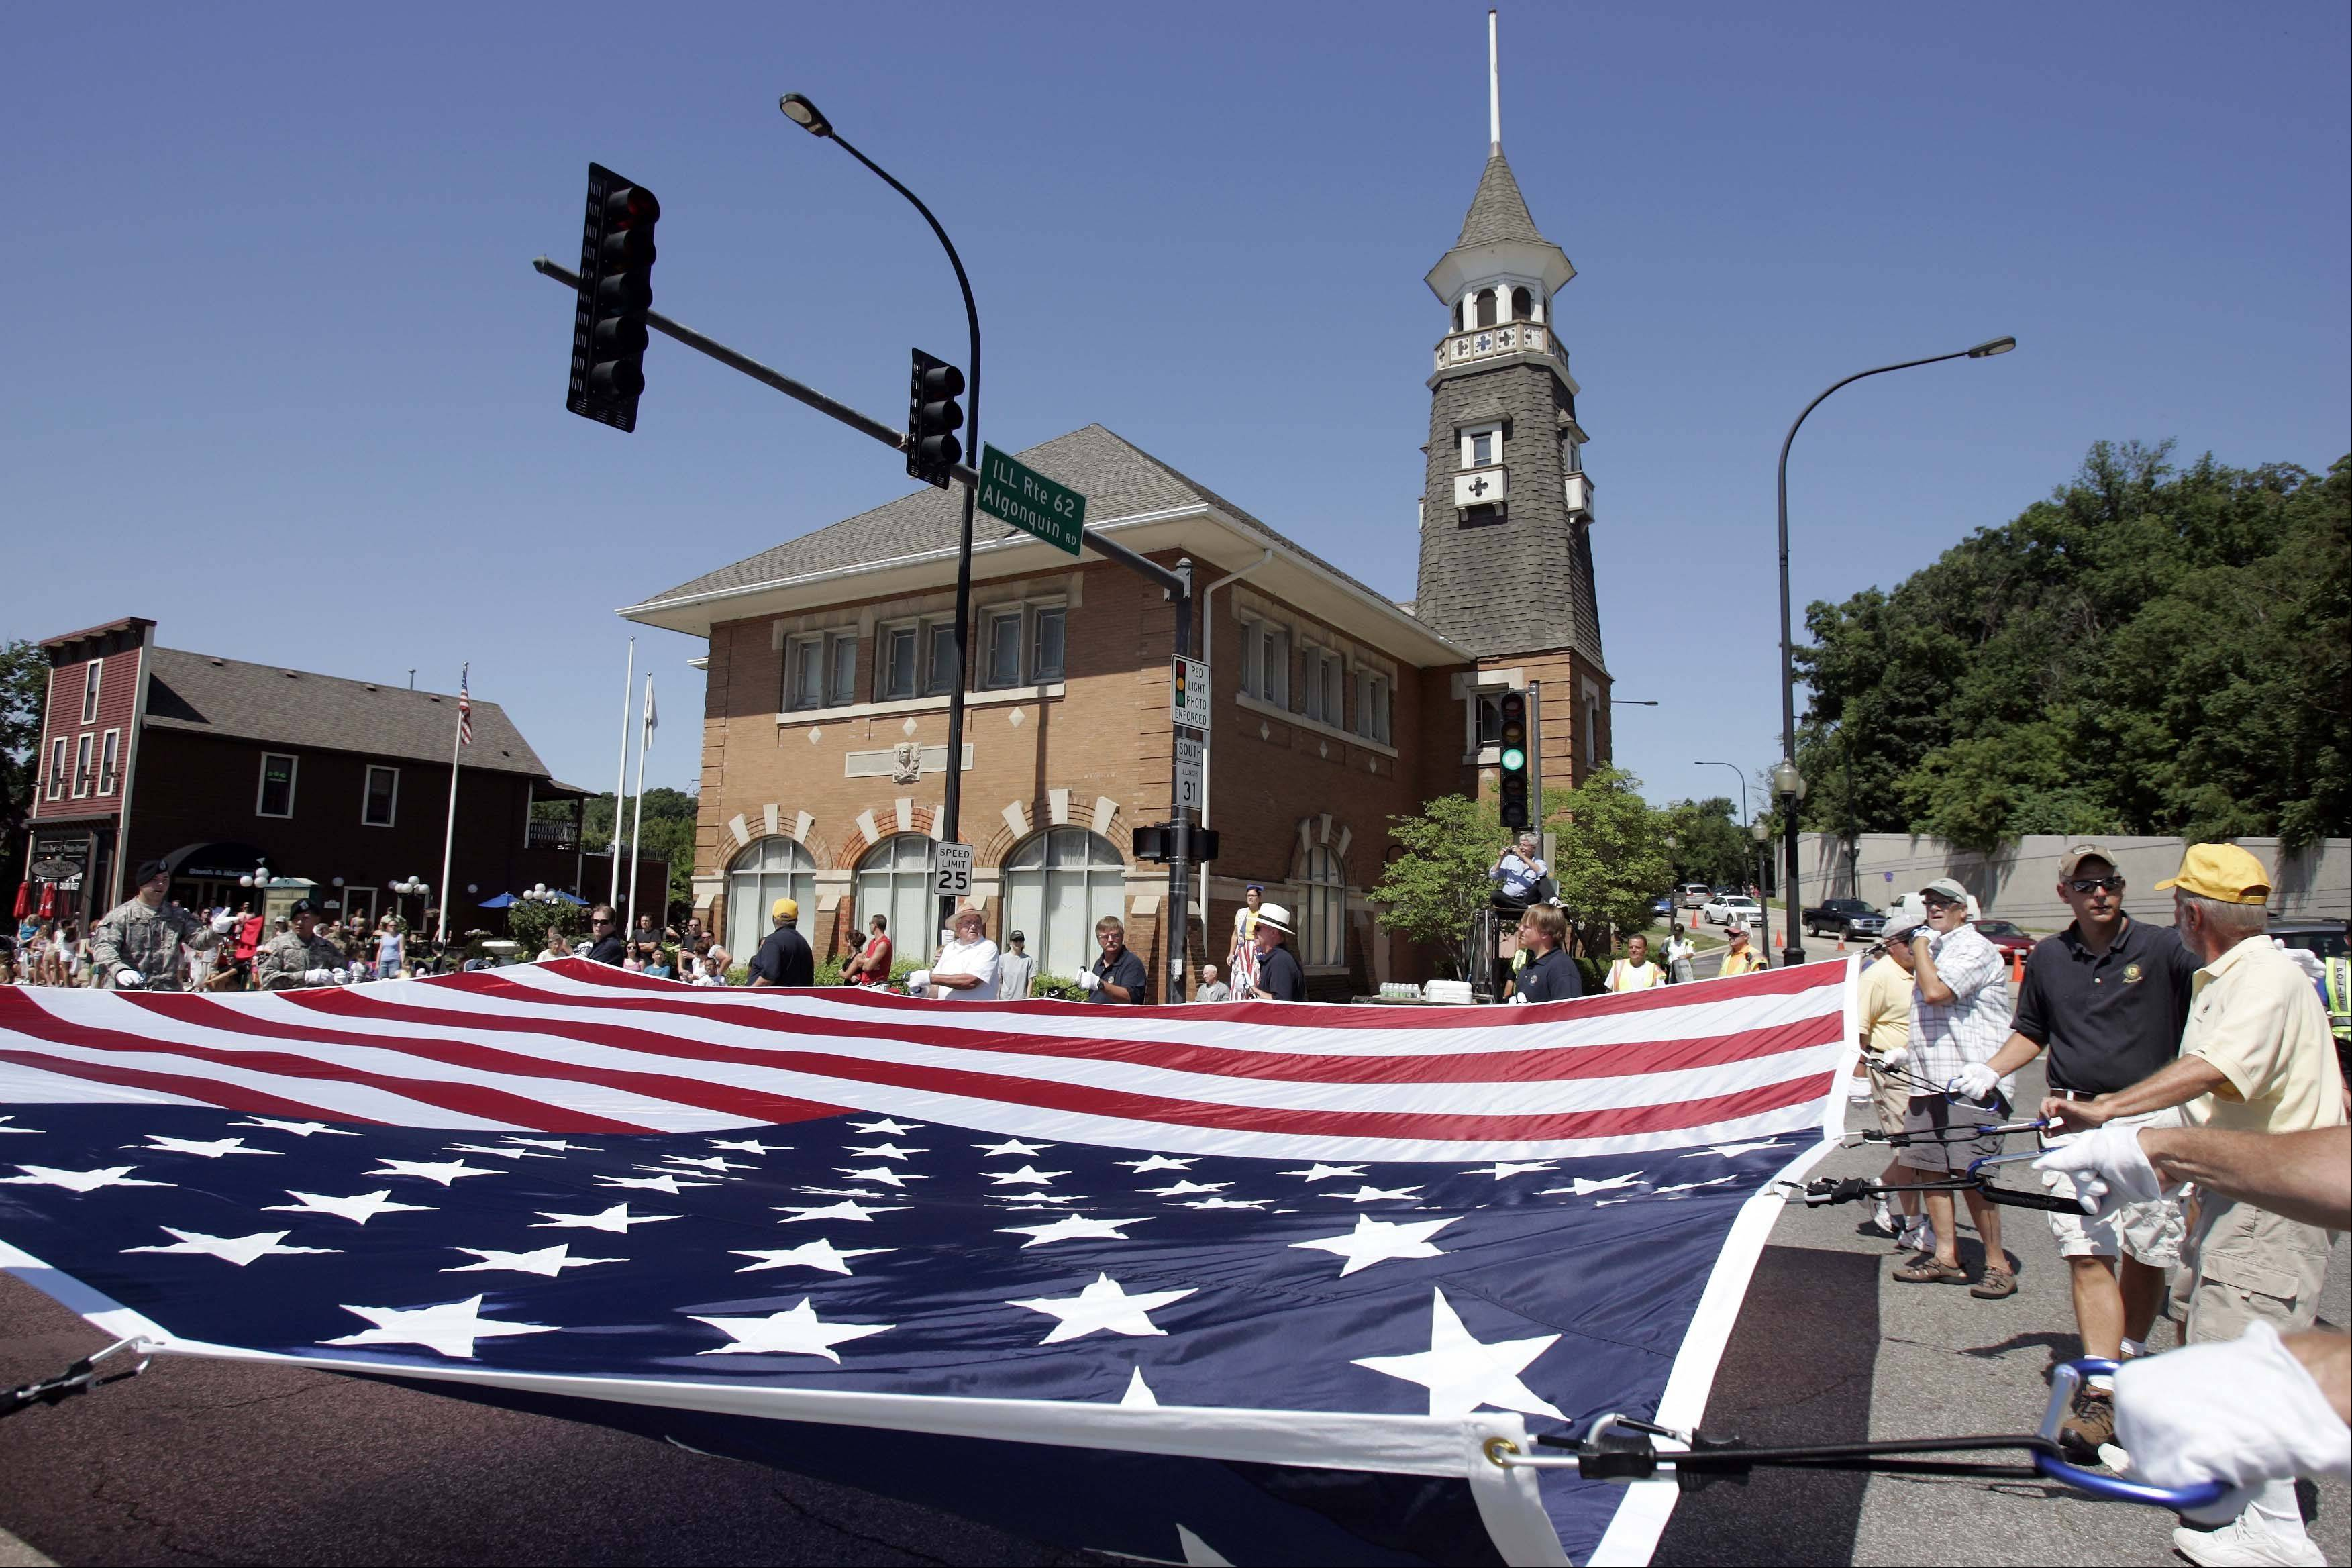 A gigantic flag makes its way south along Route 31 during a previous Founders' Days parade. This year's parade route will end at Washington Street due to Western Bypass construction.